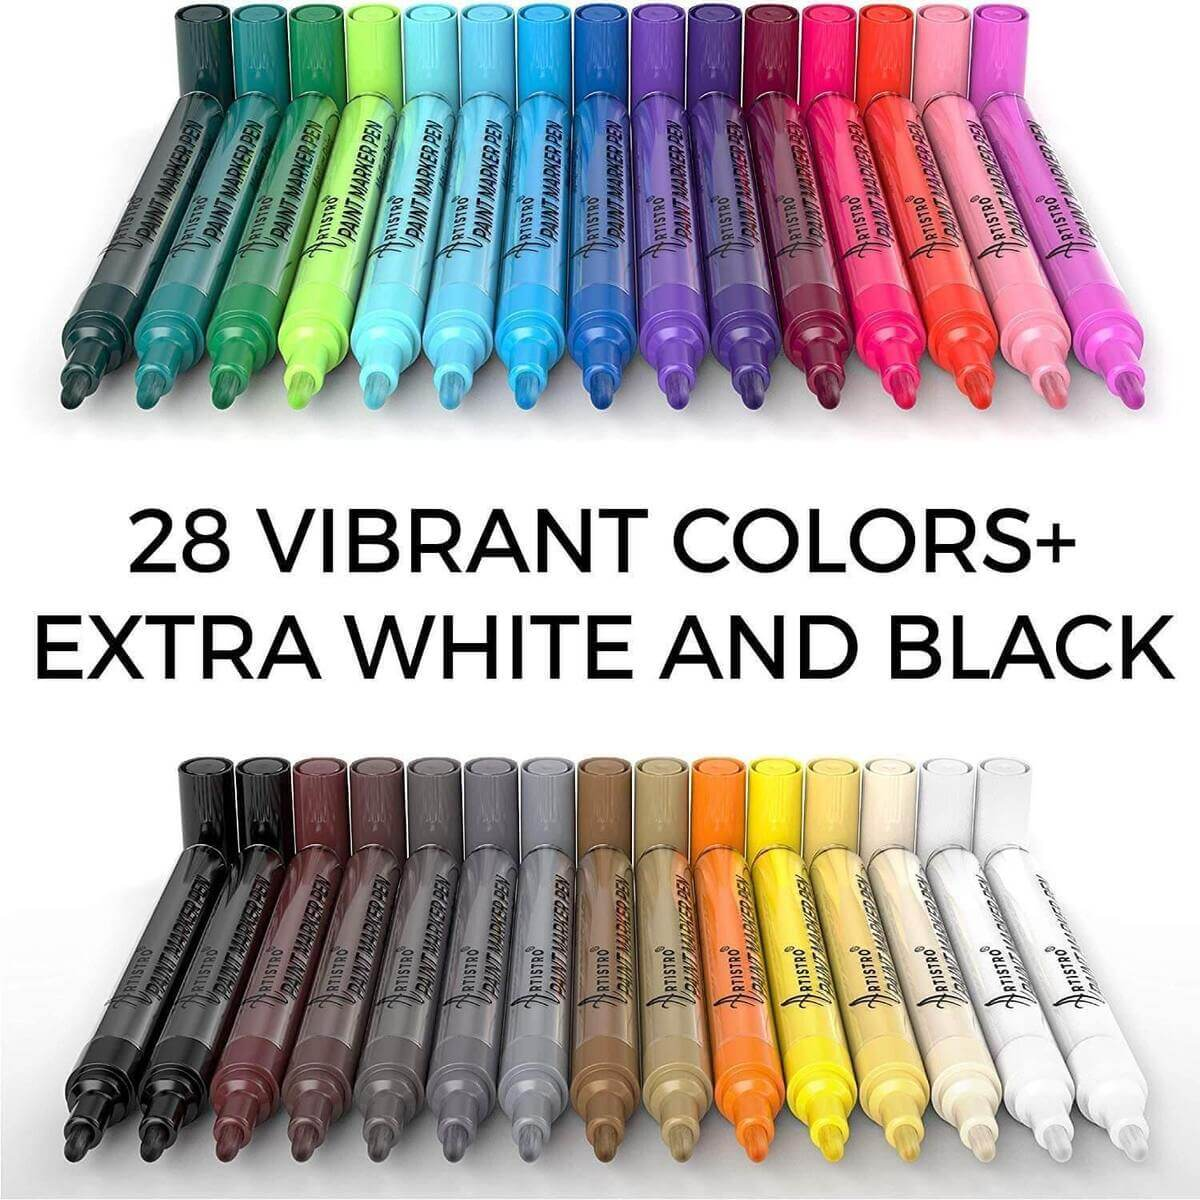 72 Acrylic Artistro Paint Pens | 42 Extra Fine Tip Markers + 30 Medium Tip Markers for Rock, Wood, Glass, Ceramic Painting - Artistro